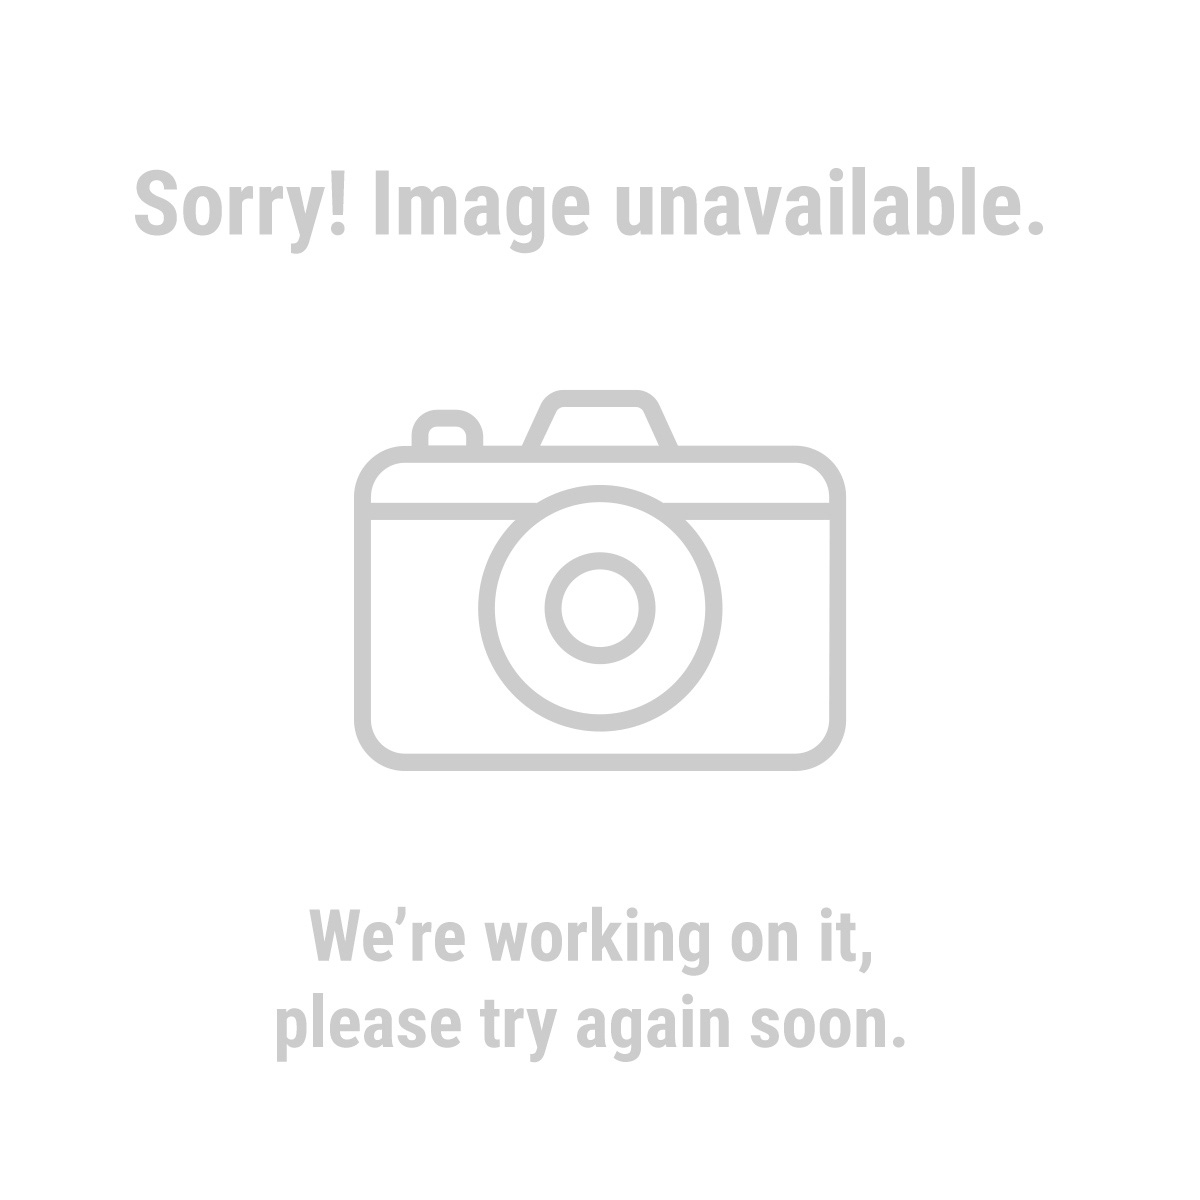 Shop for Work Benches at avatar-base.ml Find the best selection of Work Benches and get price match if you find a lower price.